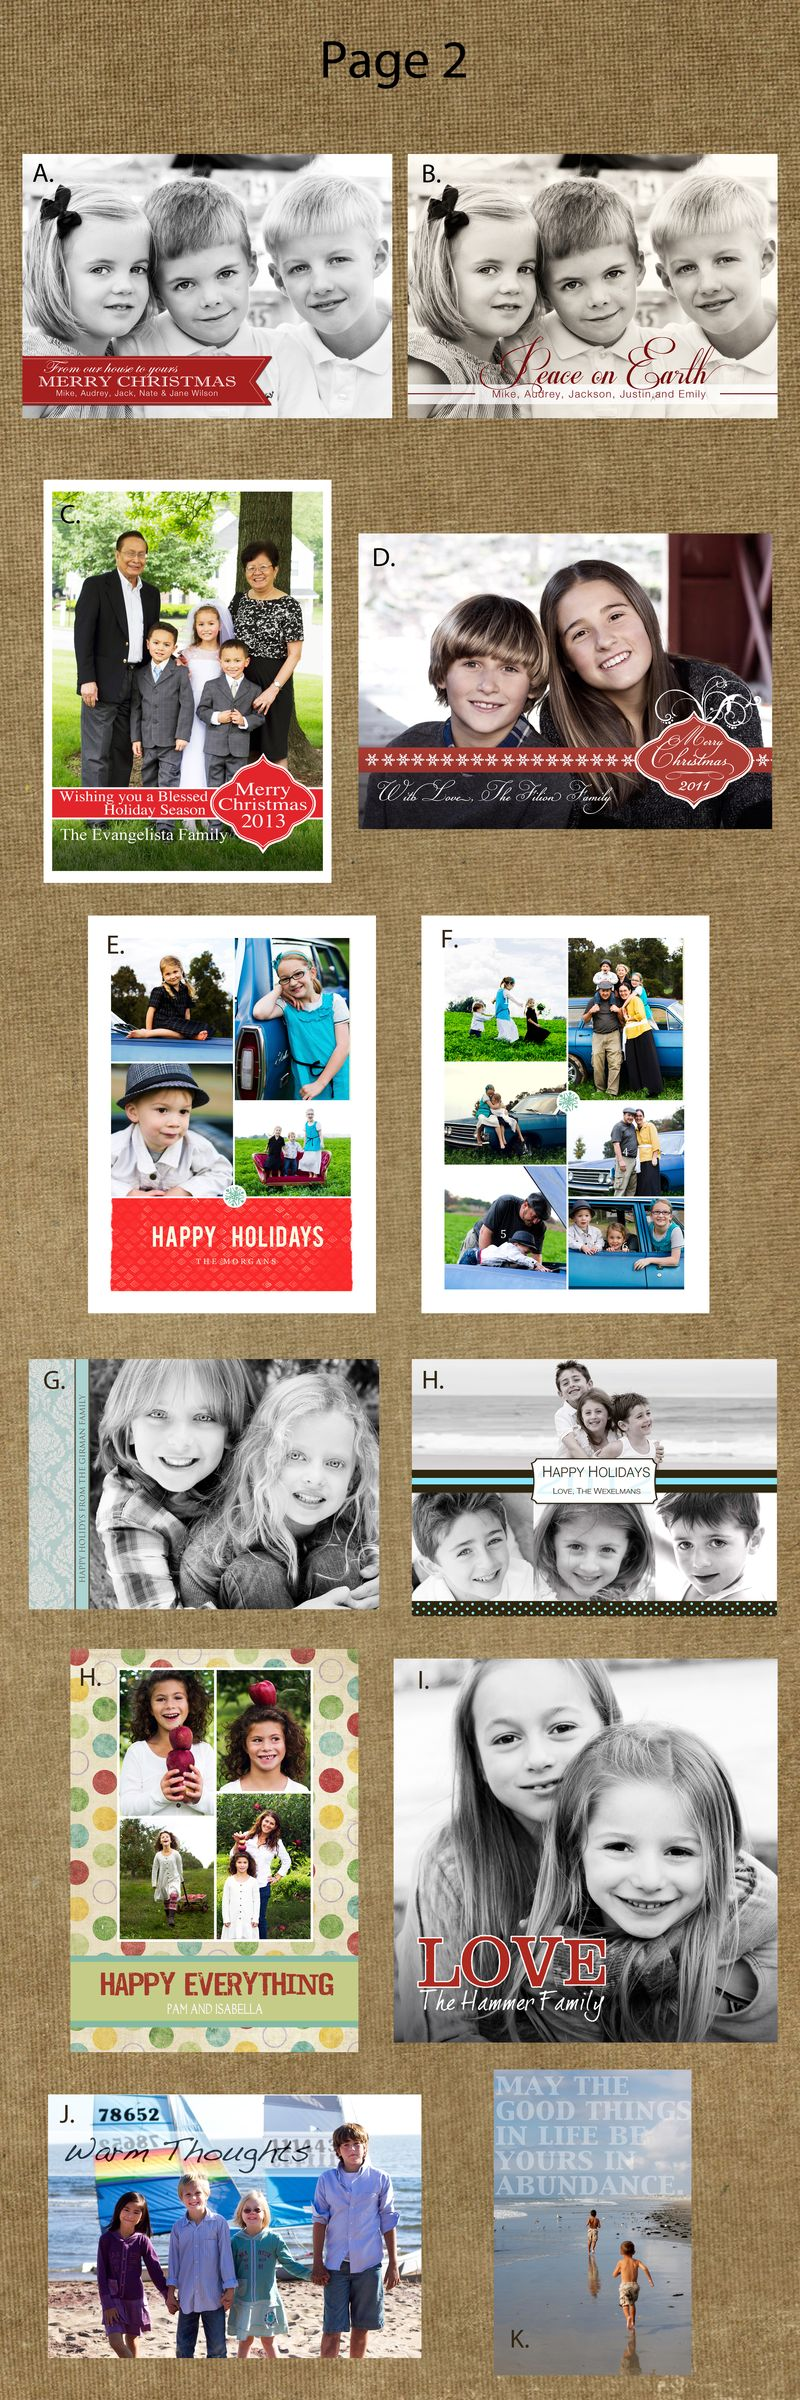 Page 2cards